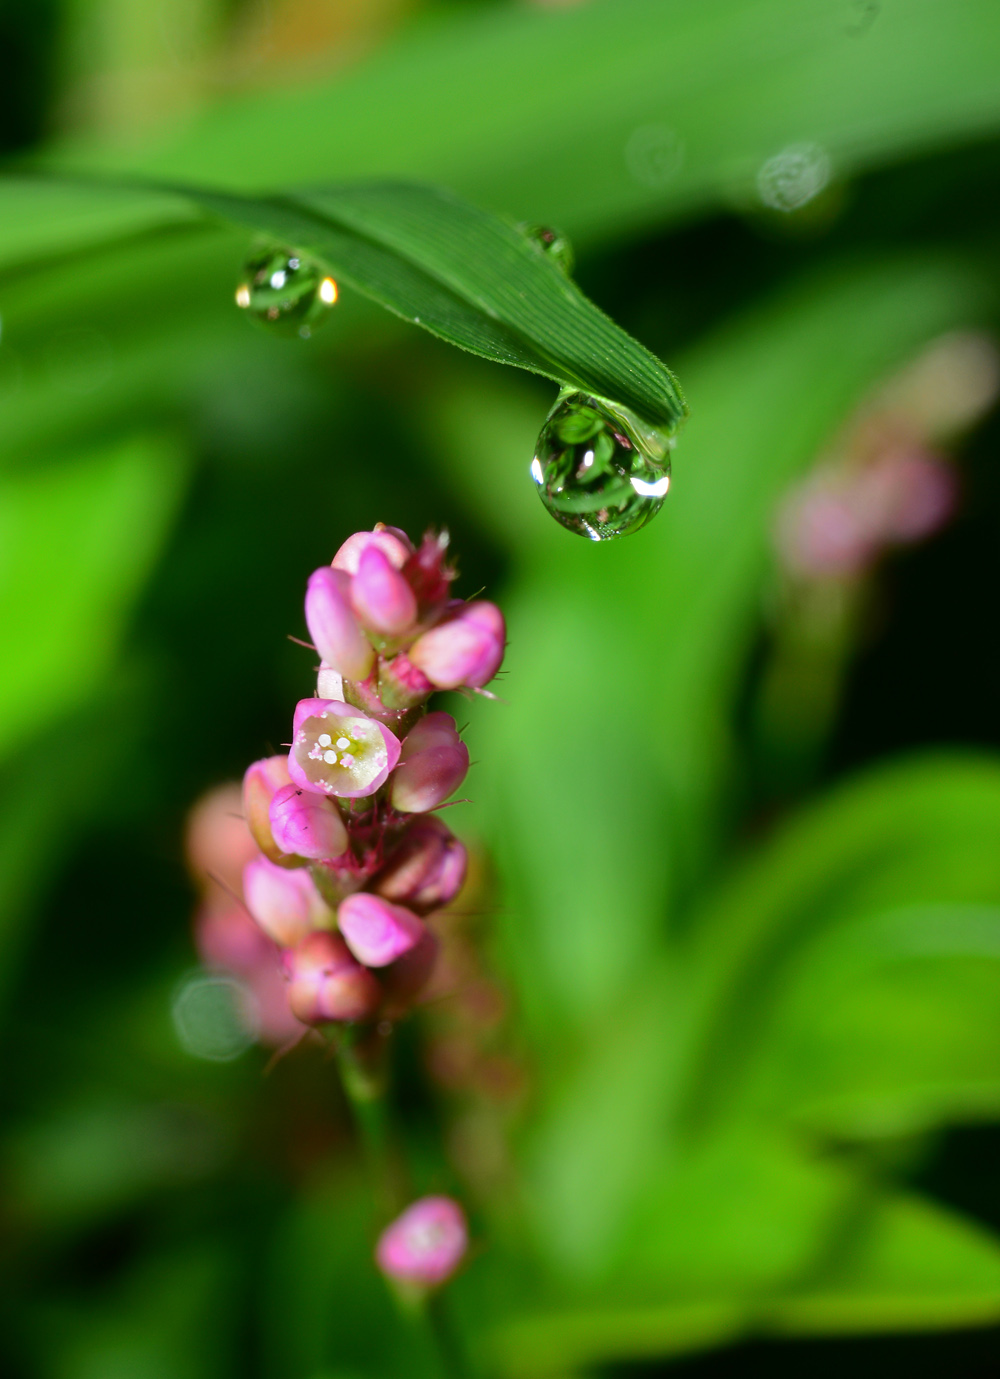 Weed flower with dew drop